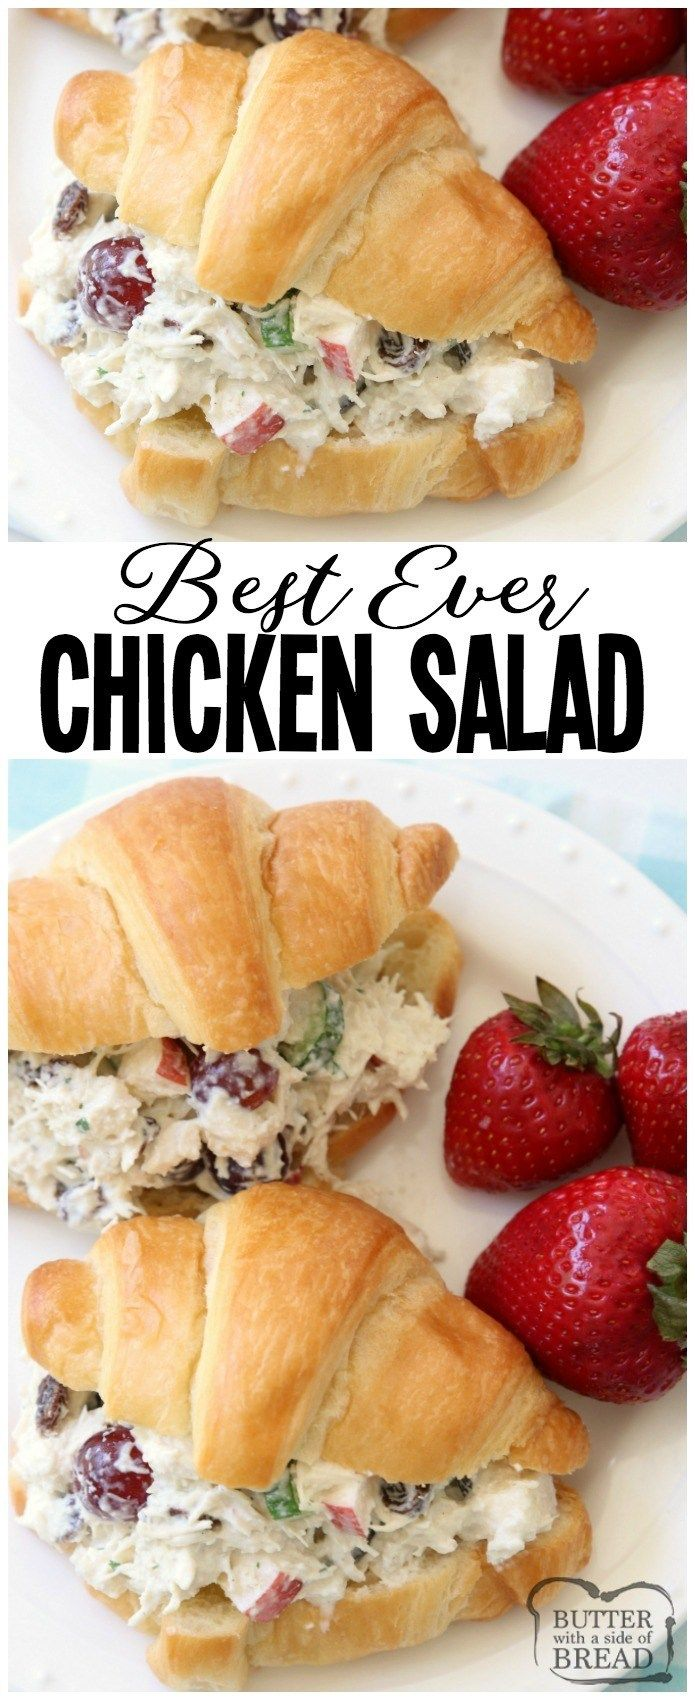 Easy 5-Minute Chicken Salad recipe that's the BEST I've ever tasted! The simple …